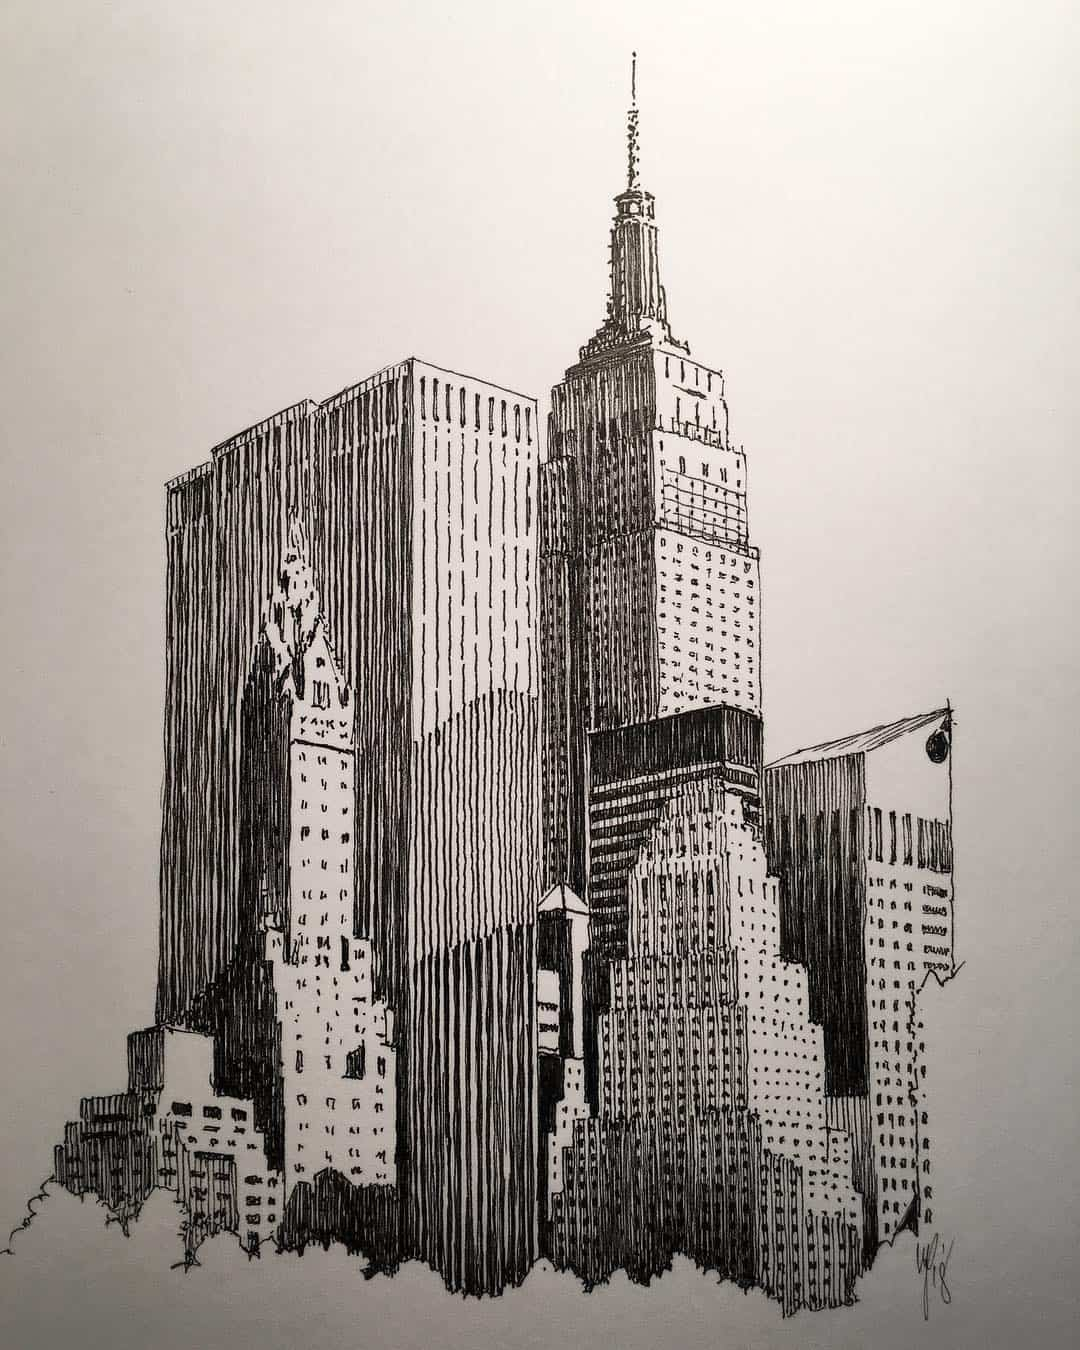 Artist Marc Poulier Creates Stunning Architectural Drawings